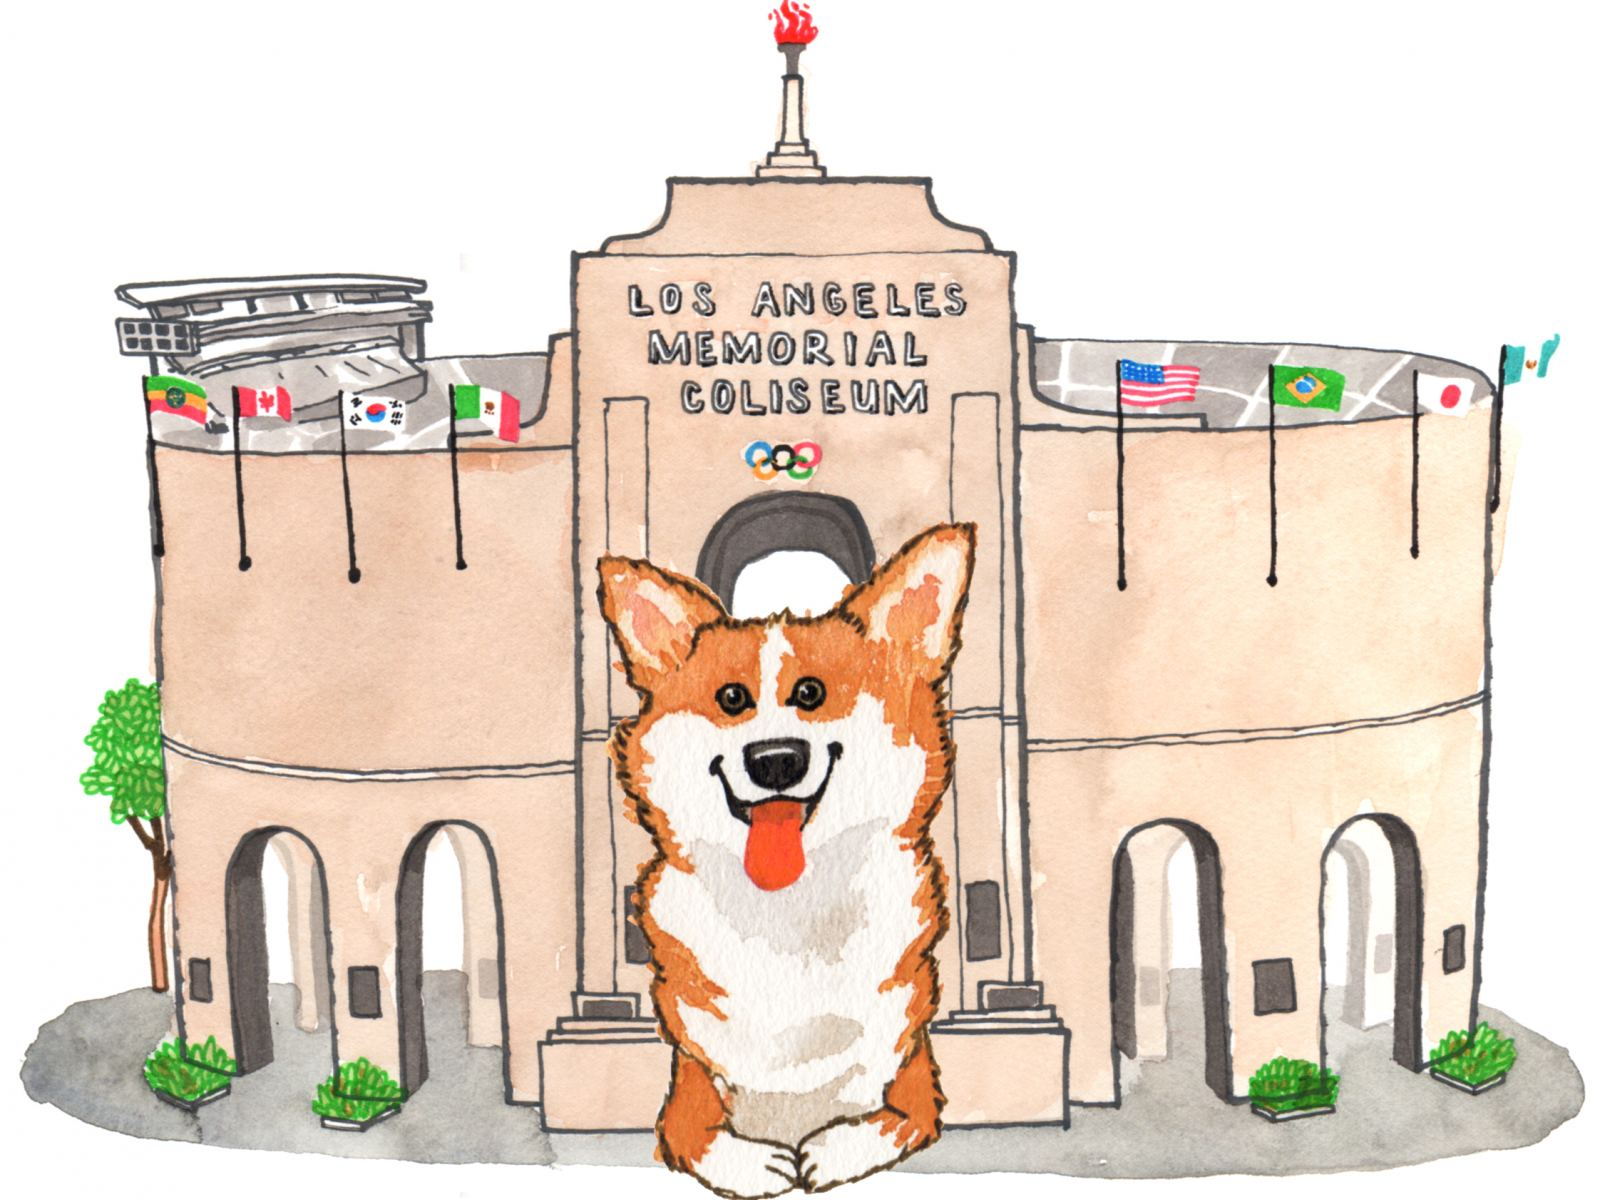 Corgi at the Coliseum | Illustration by Max Kornell